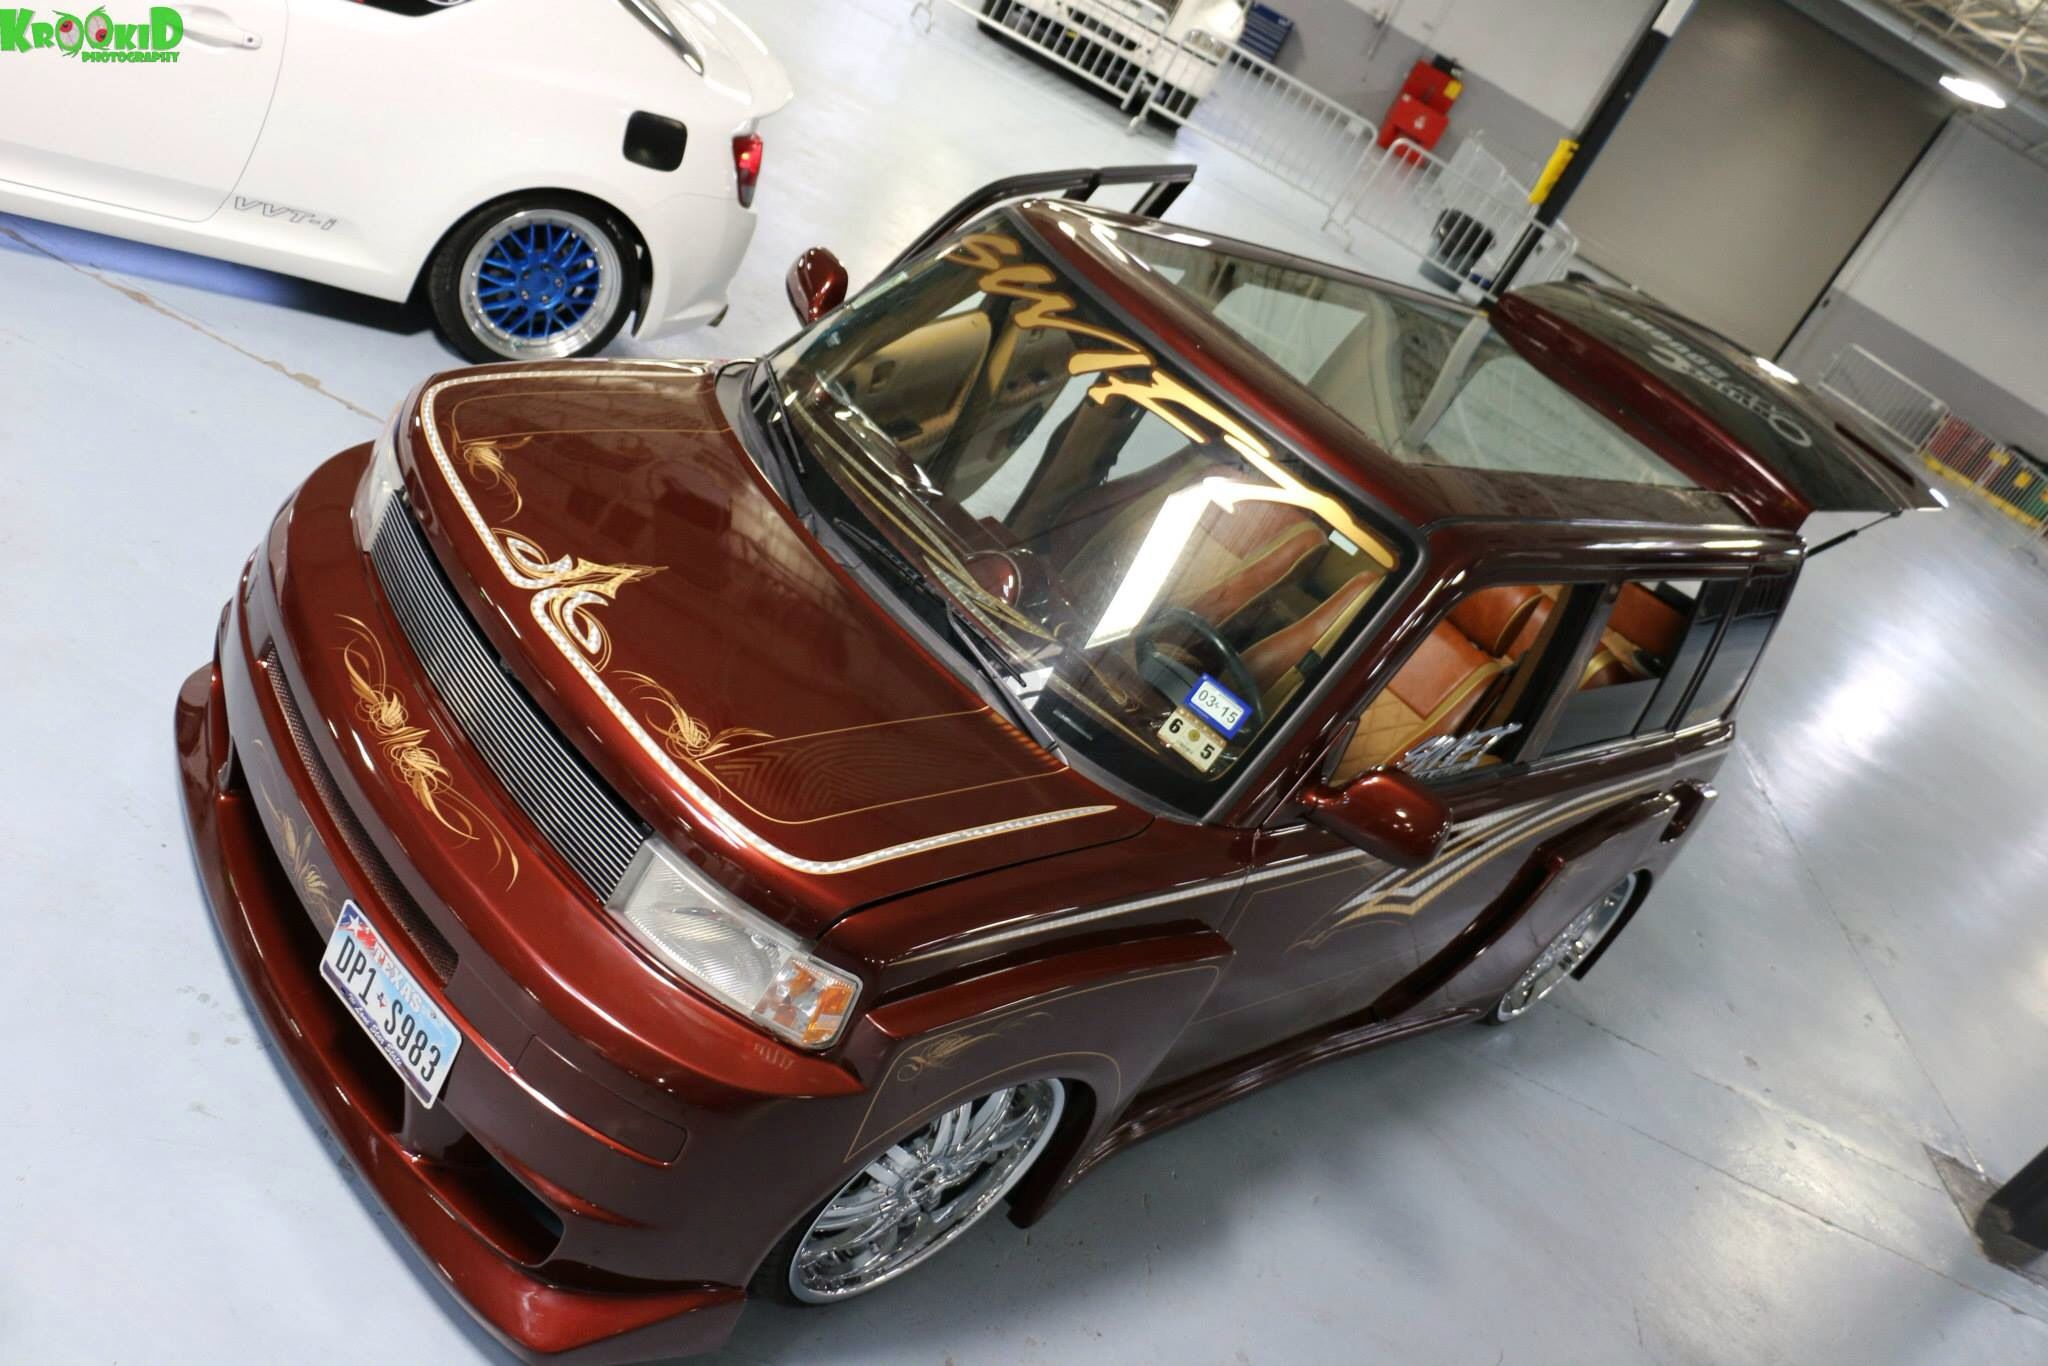 Bagged Scion Xb Glassroof 2door Conversion Full Custom Toyota Scion Xb Scion Xb Scion